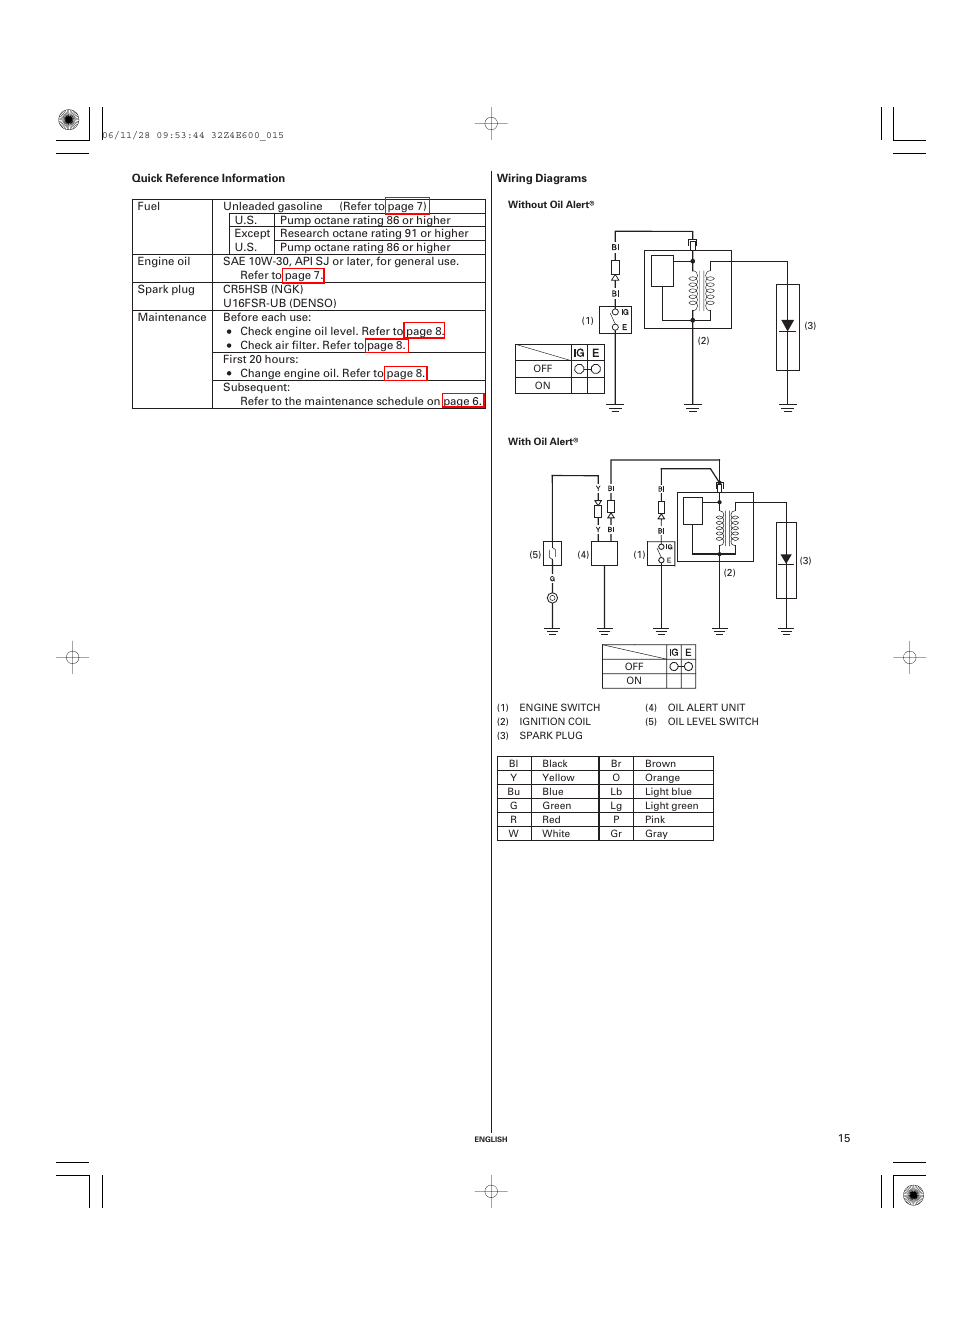 Quick Reference Information  Wiring Diagrams